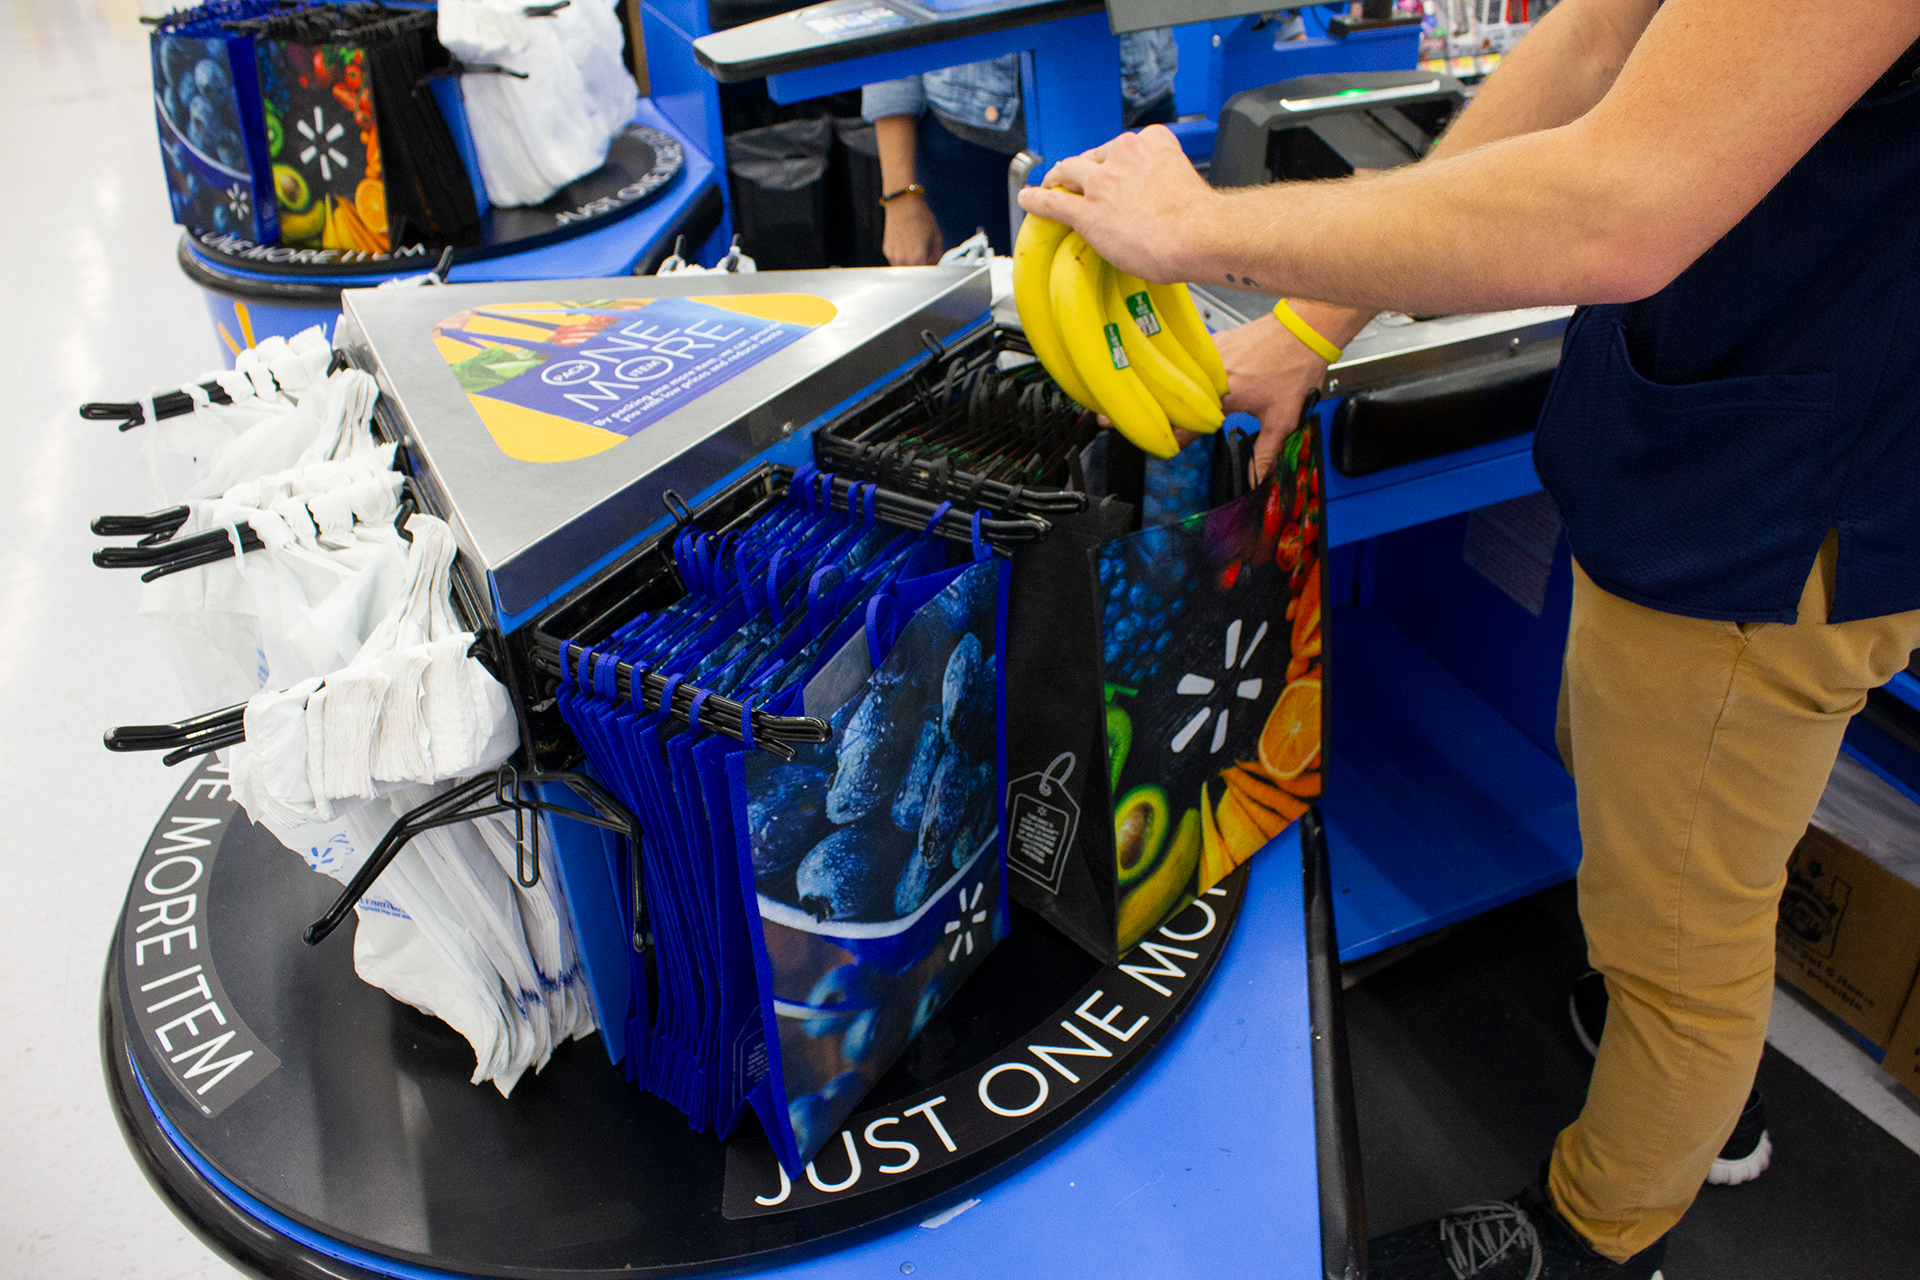 Reusable bag being used by associate